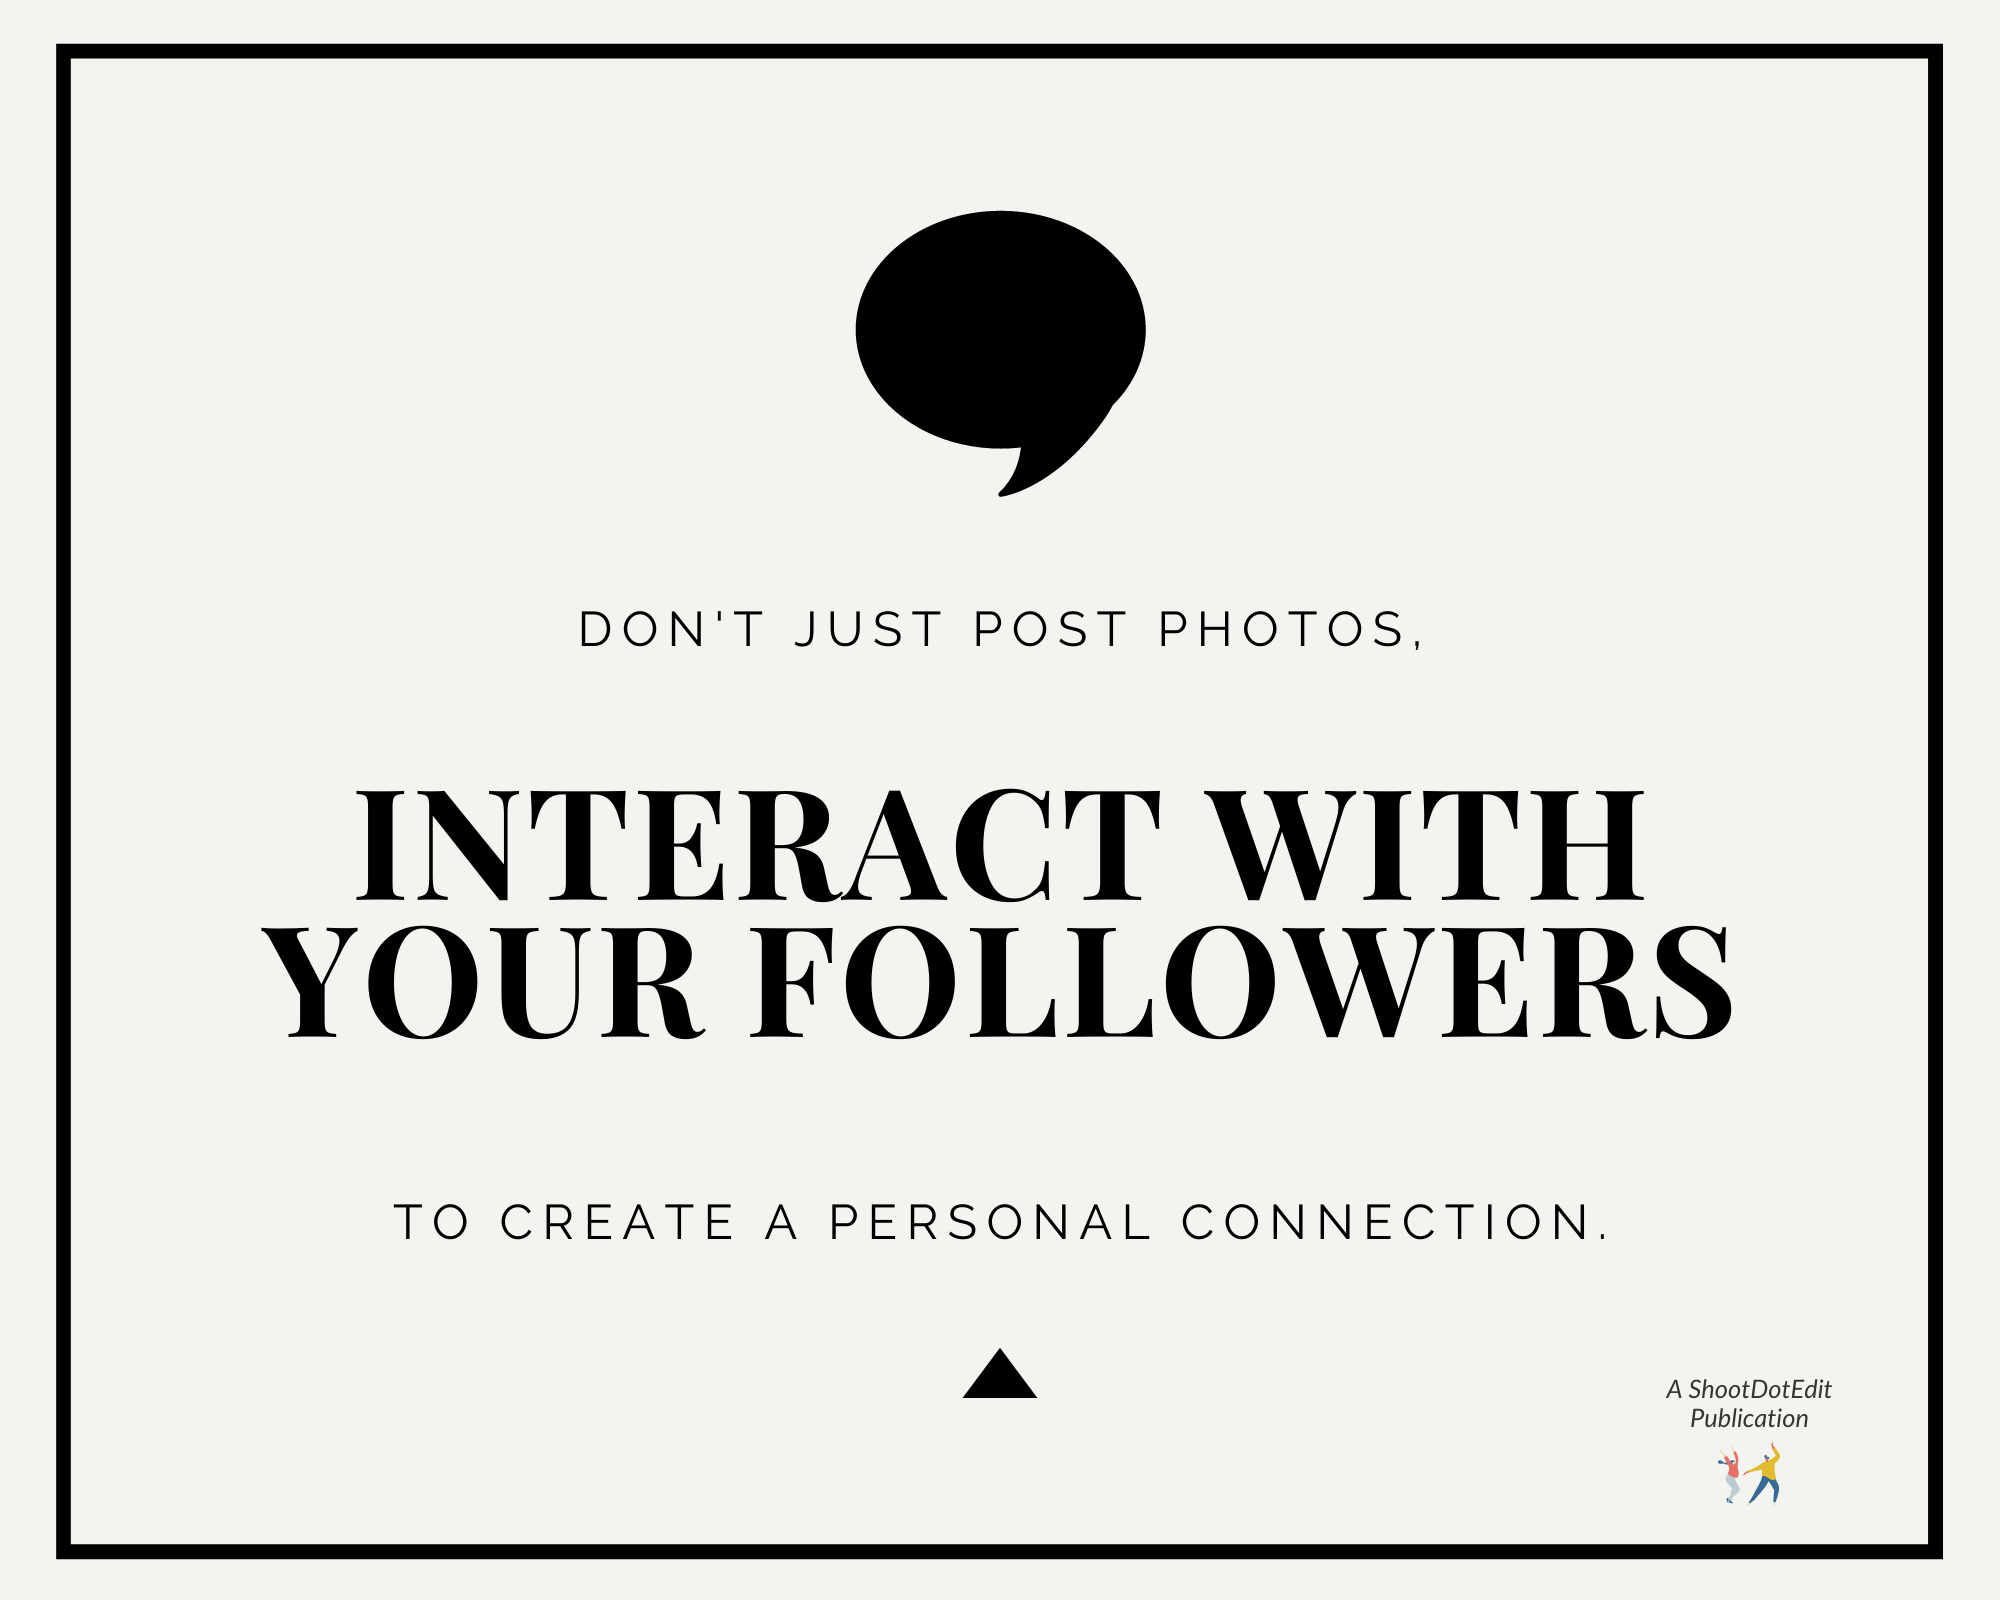 Graphic displaying - Don't just post photos, interact with your followers to create a personal connection